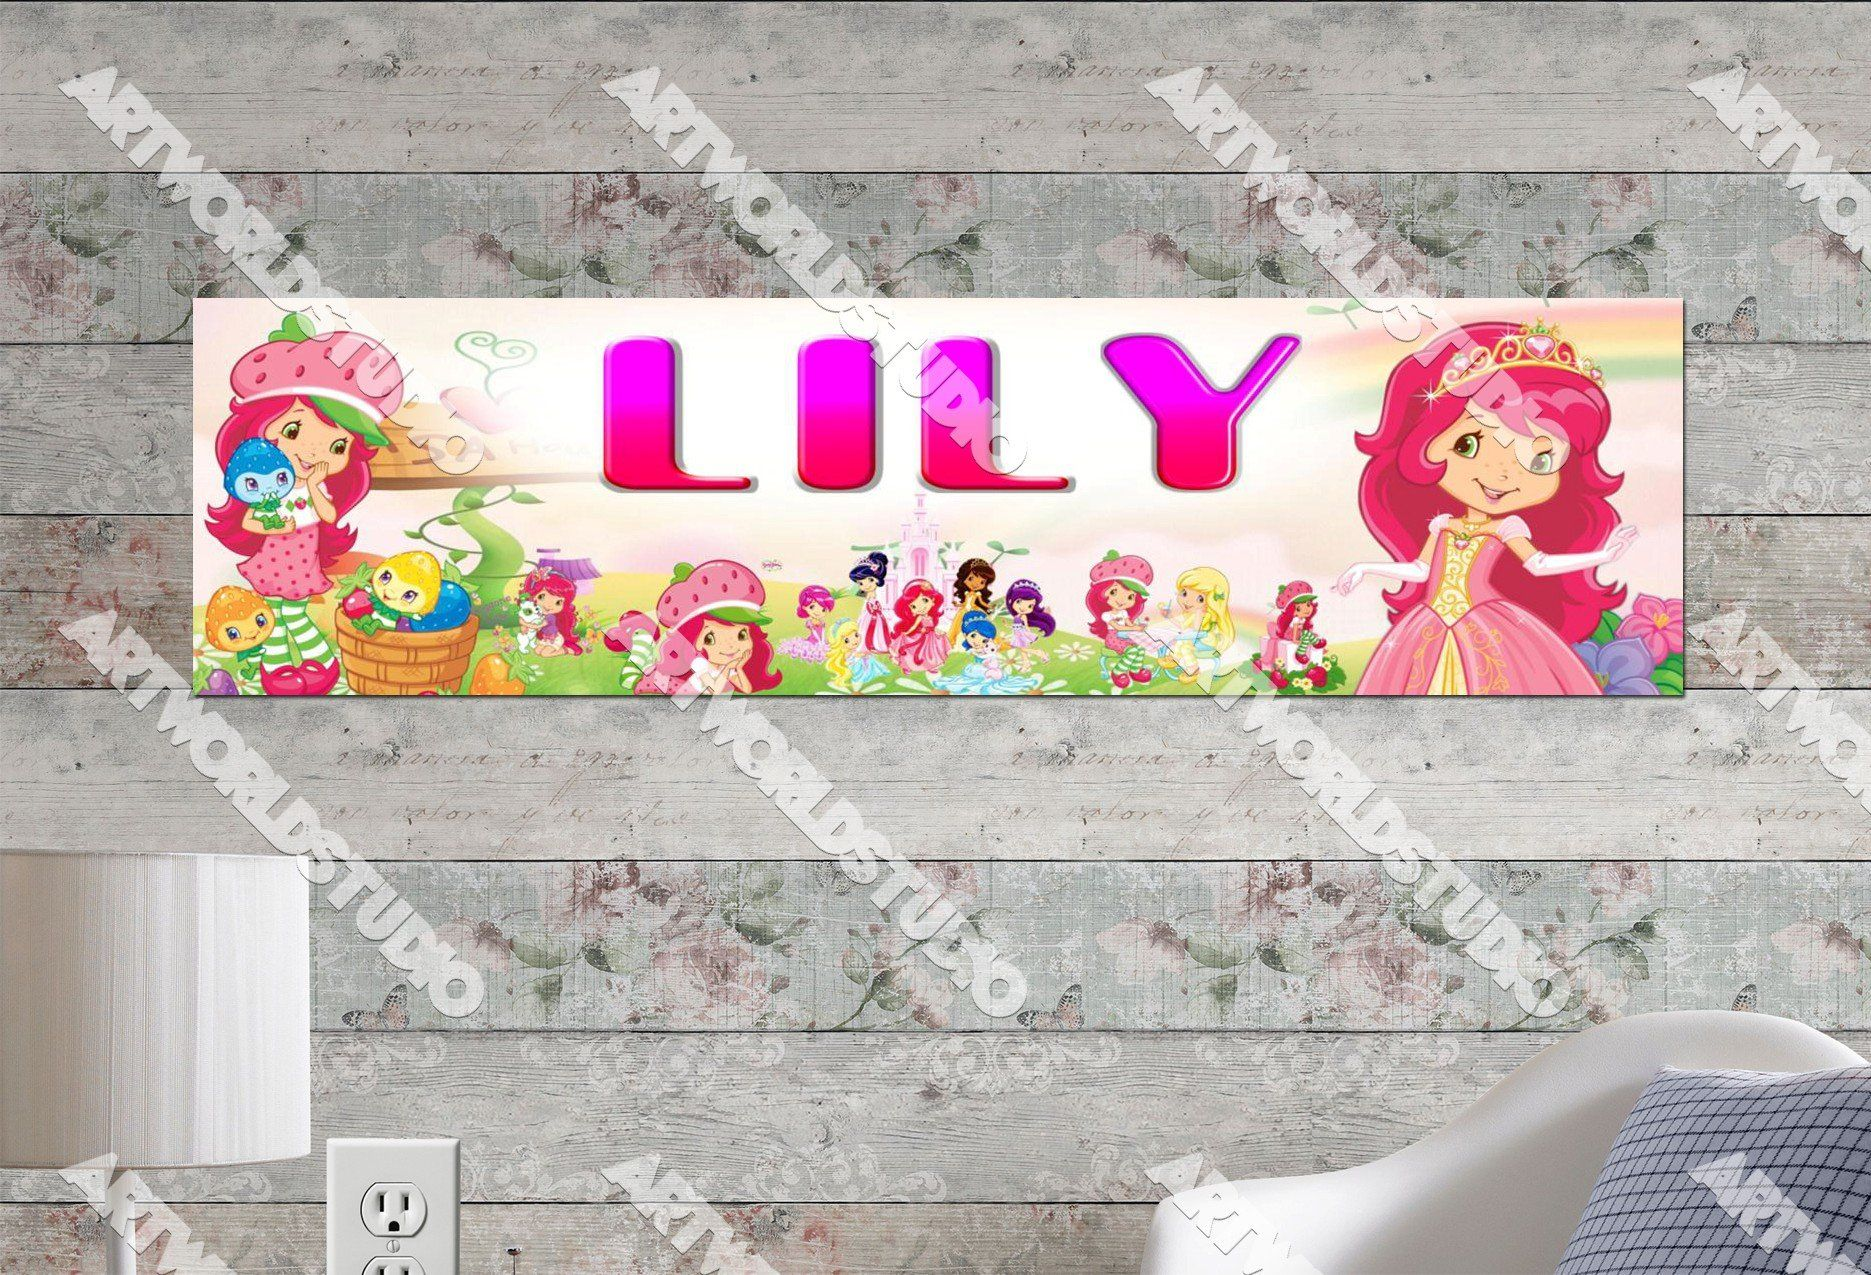 Personalizedcustomized Strawberry Shortcake Poster, Border Mat And Frame Options Banner